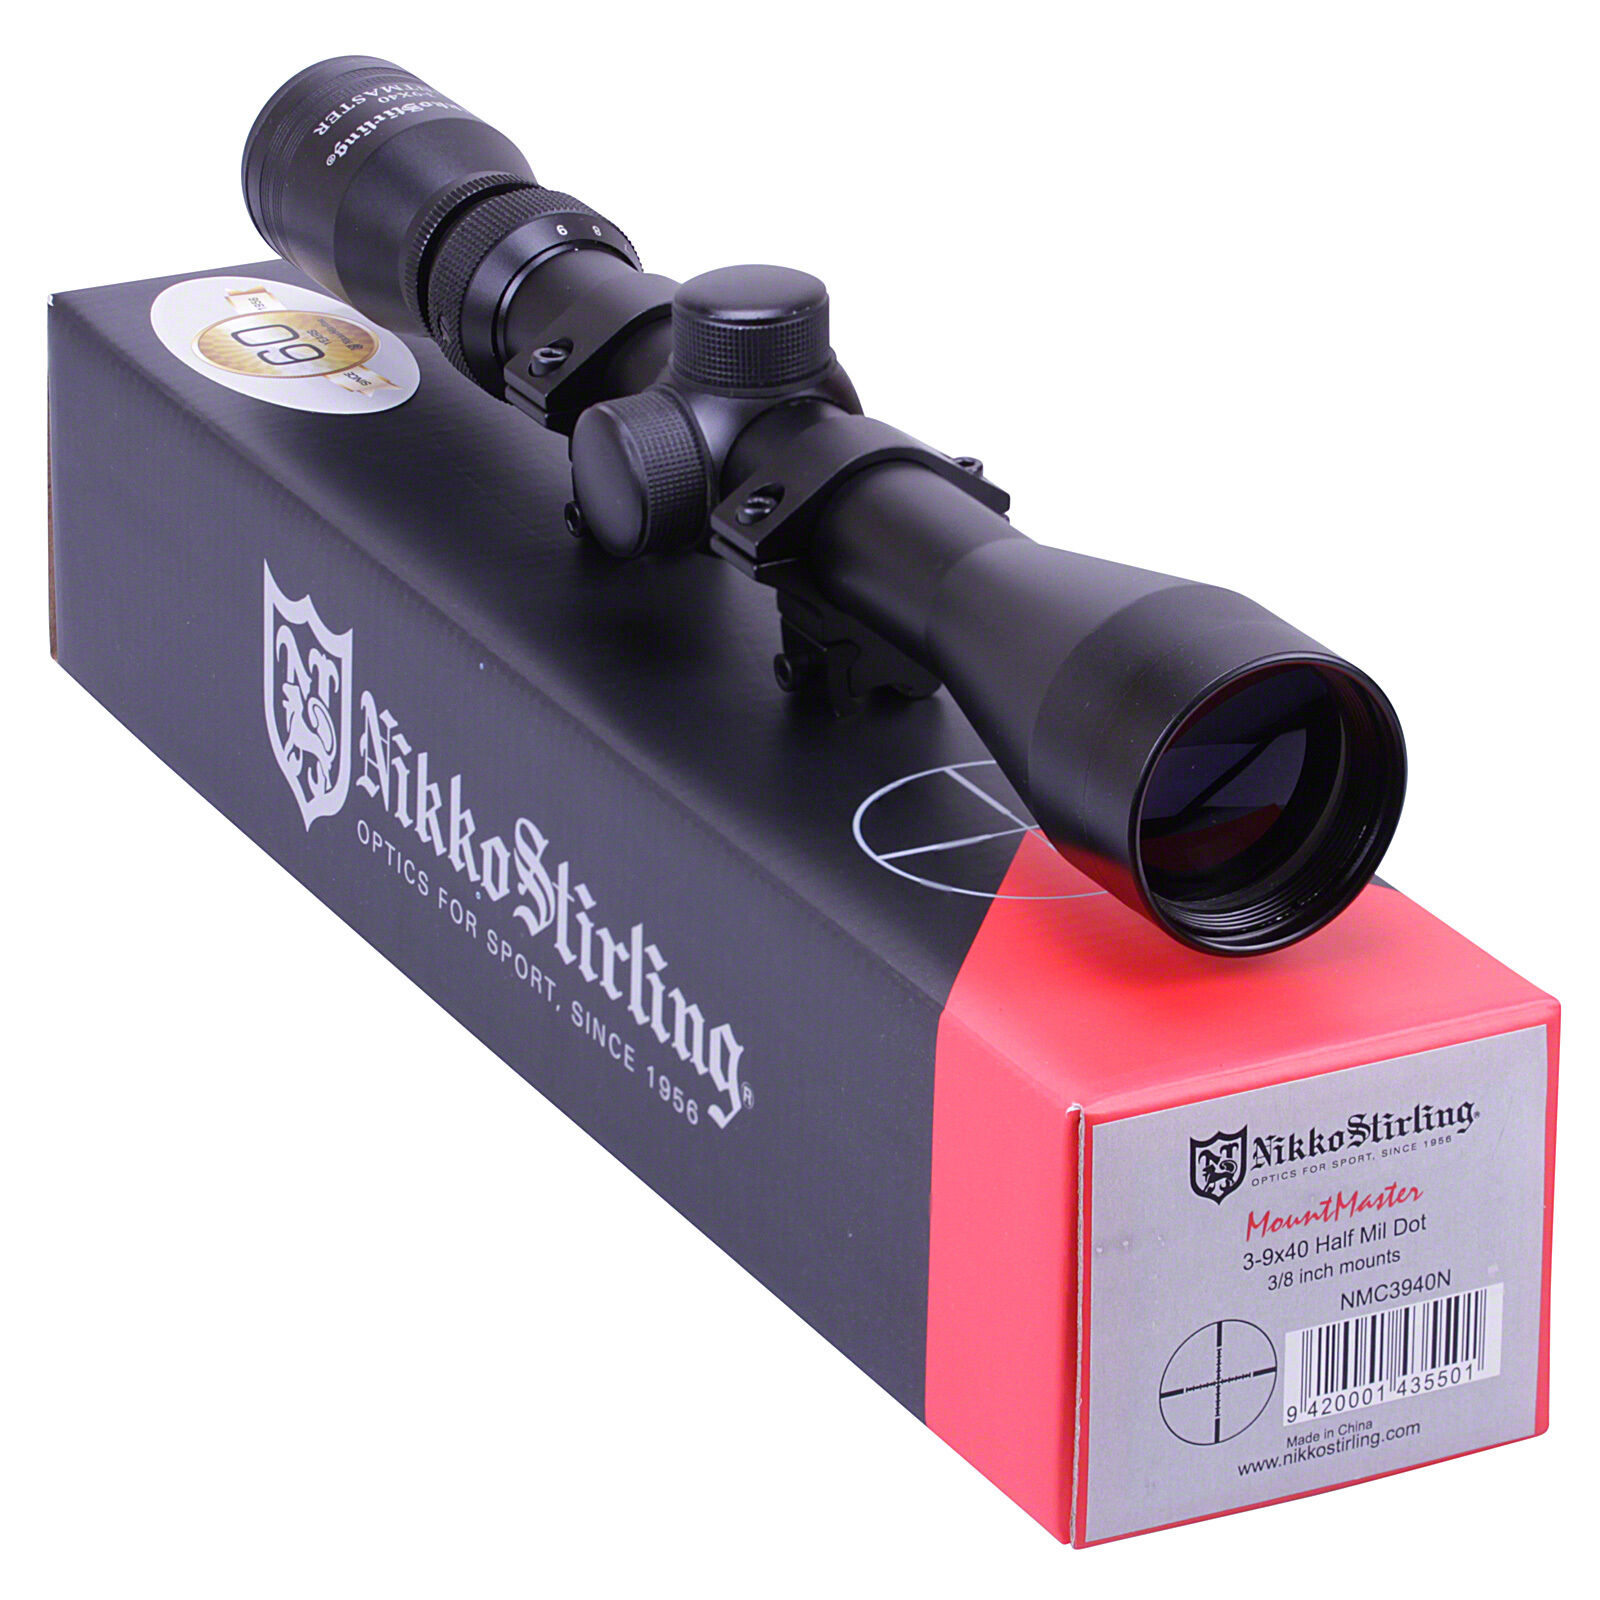 Nikko MOUNTMASTER 3-9x40 Half Mil Dot Zoom Rifle Scope 11mm Mounts Sight Hunting